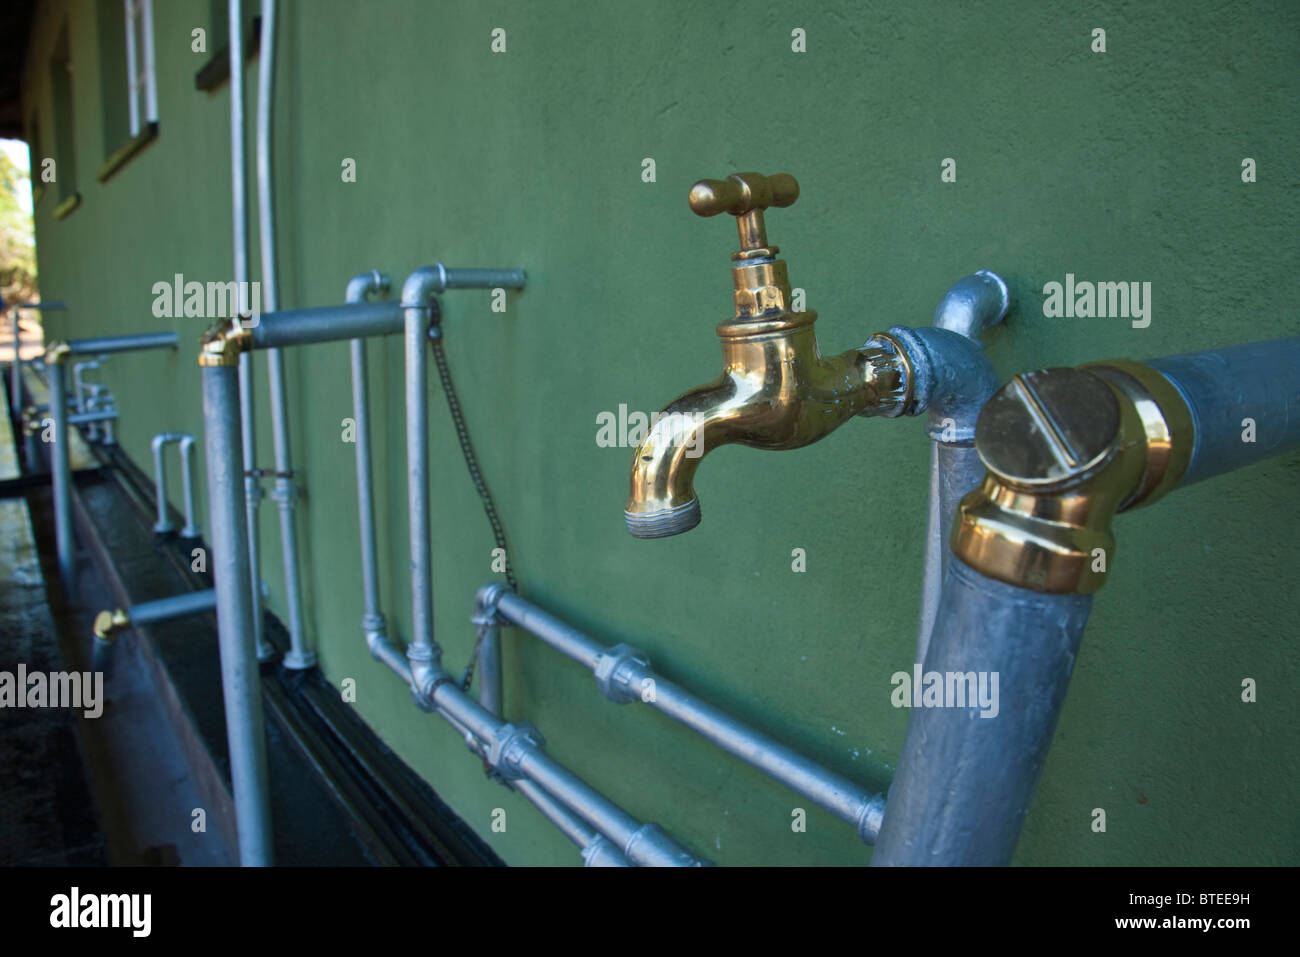 Shiny, clean taps and brass pipe fittings in Simuwini camp showing care and maintenance - Stock Image